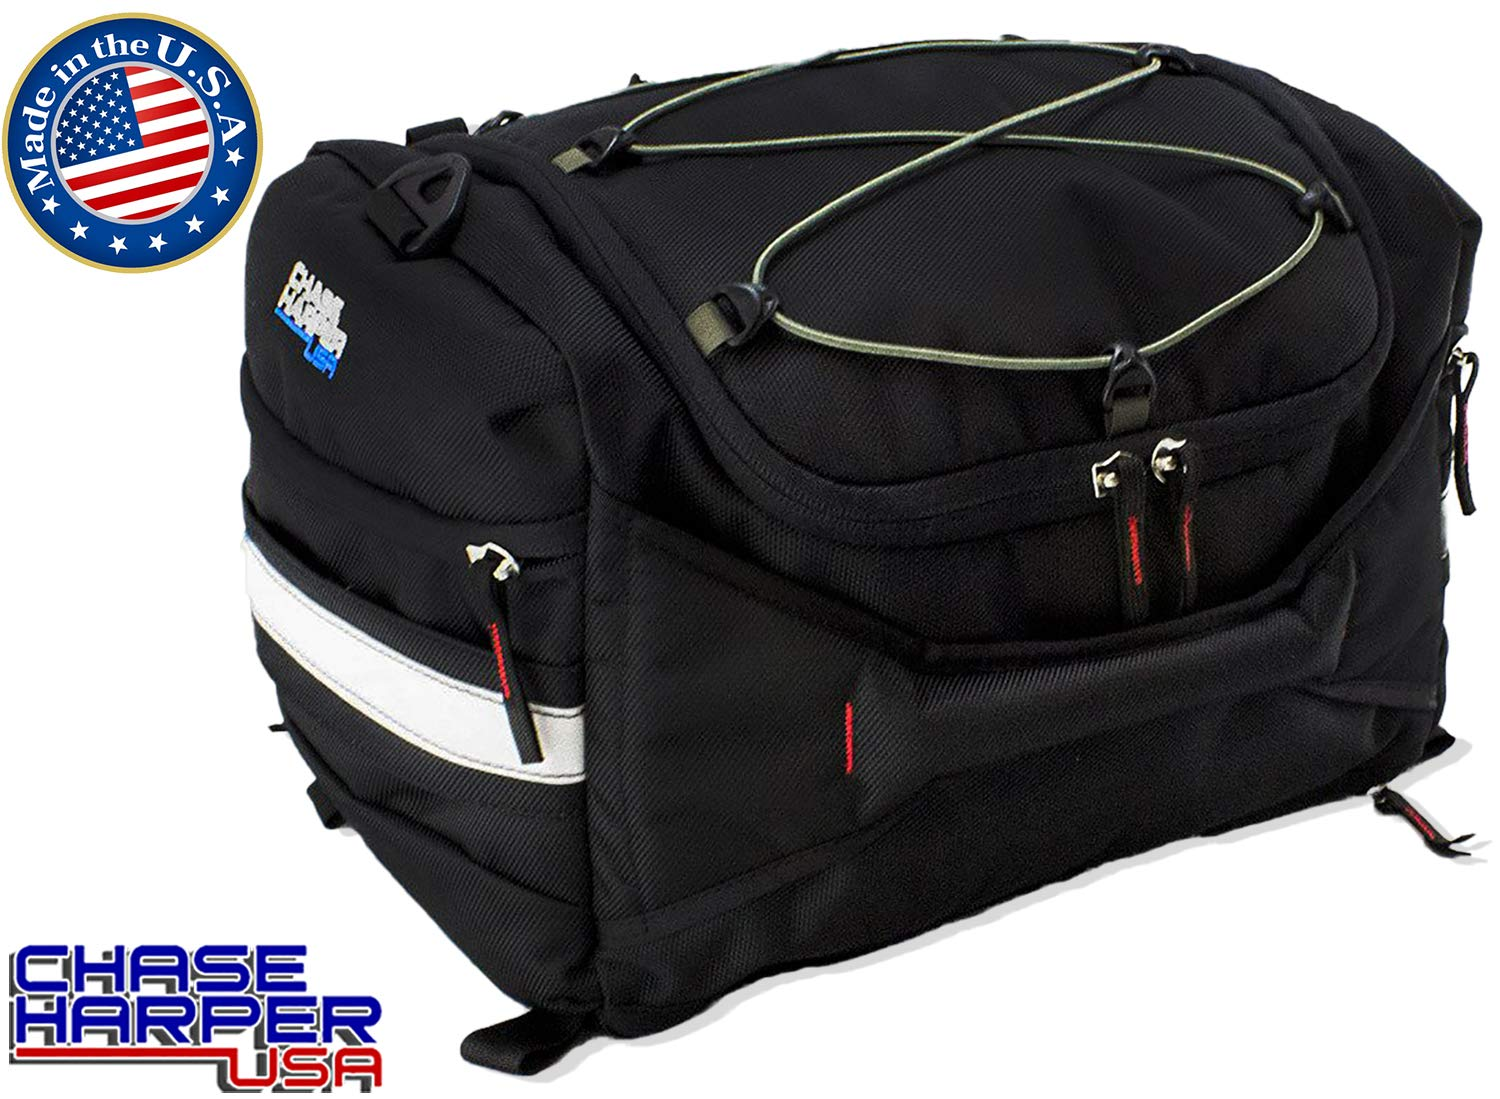 Chase Harper 4200 Hideaway Tail Trunk - Water-Resistant, Tear-Resistant, Industrial Grade Ballistic Nylon with Adjustable Bungee Mounting System for Universal Fit, StuffSack Pocket for Easy Transport, 18.8 Liters of Storage - 12''Lx12''Wx8''H by Chase Harper USA